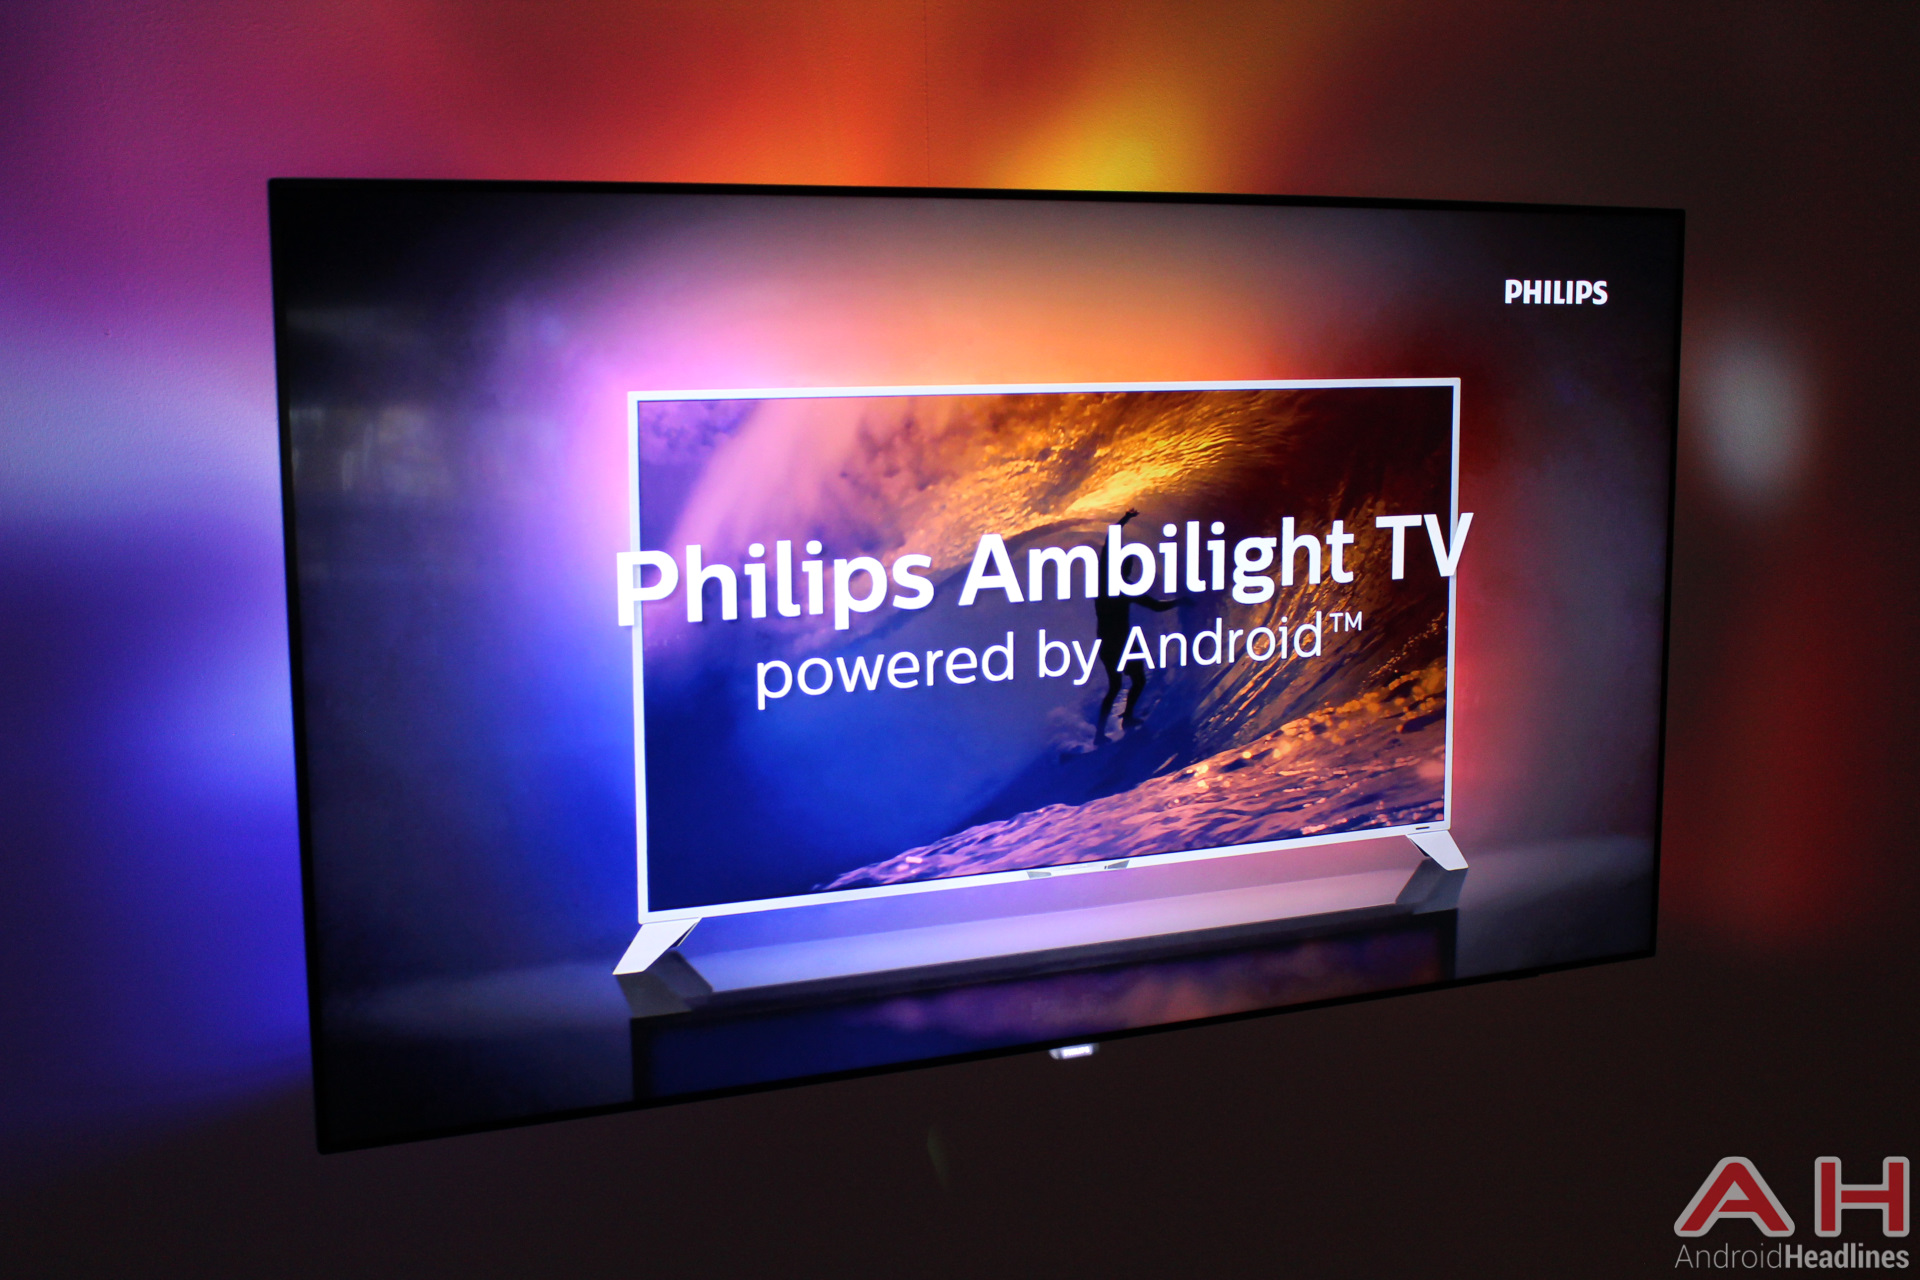 Philips Ambilux Android TV AH 11